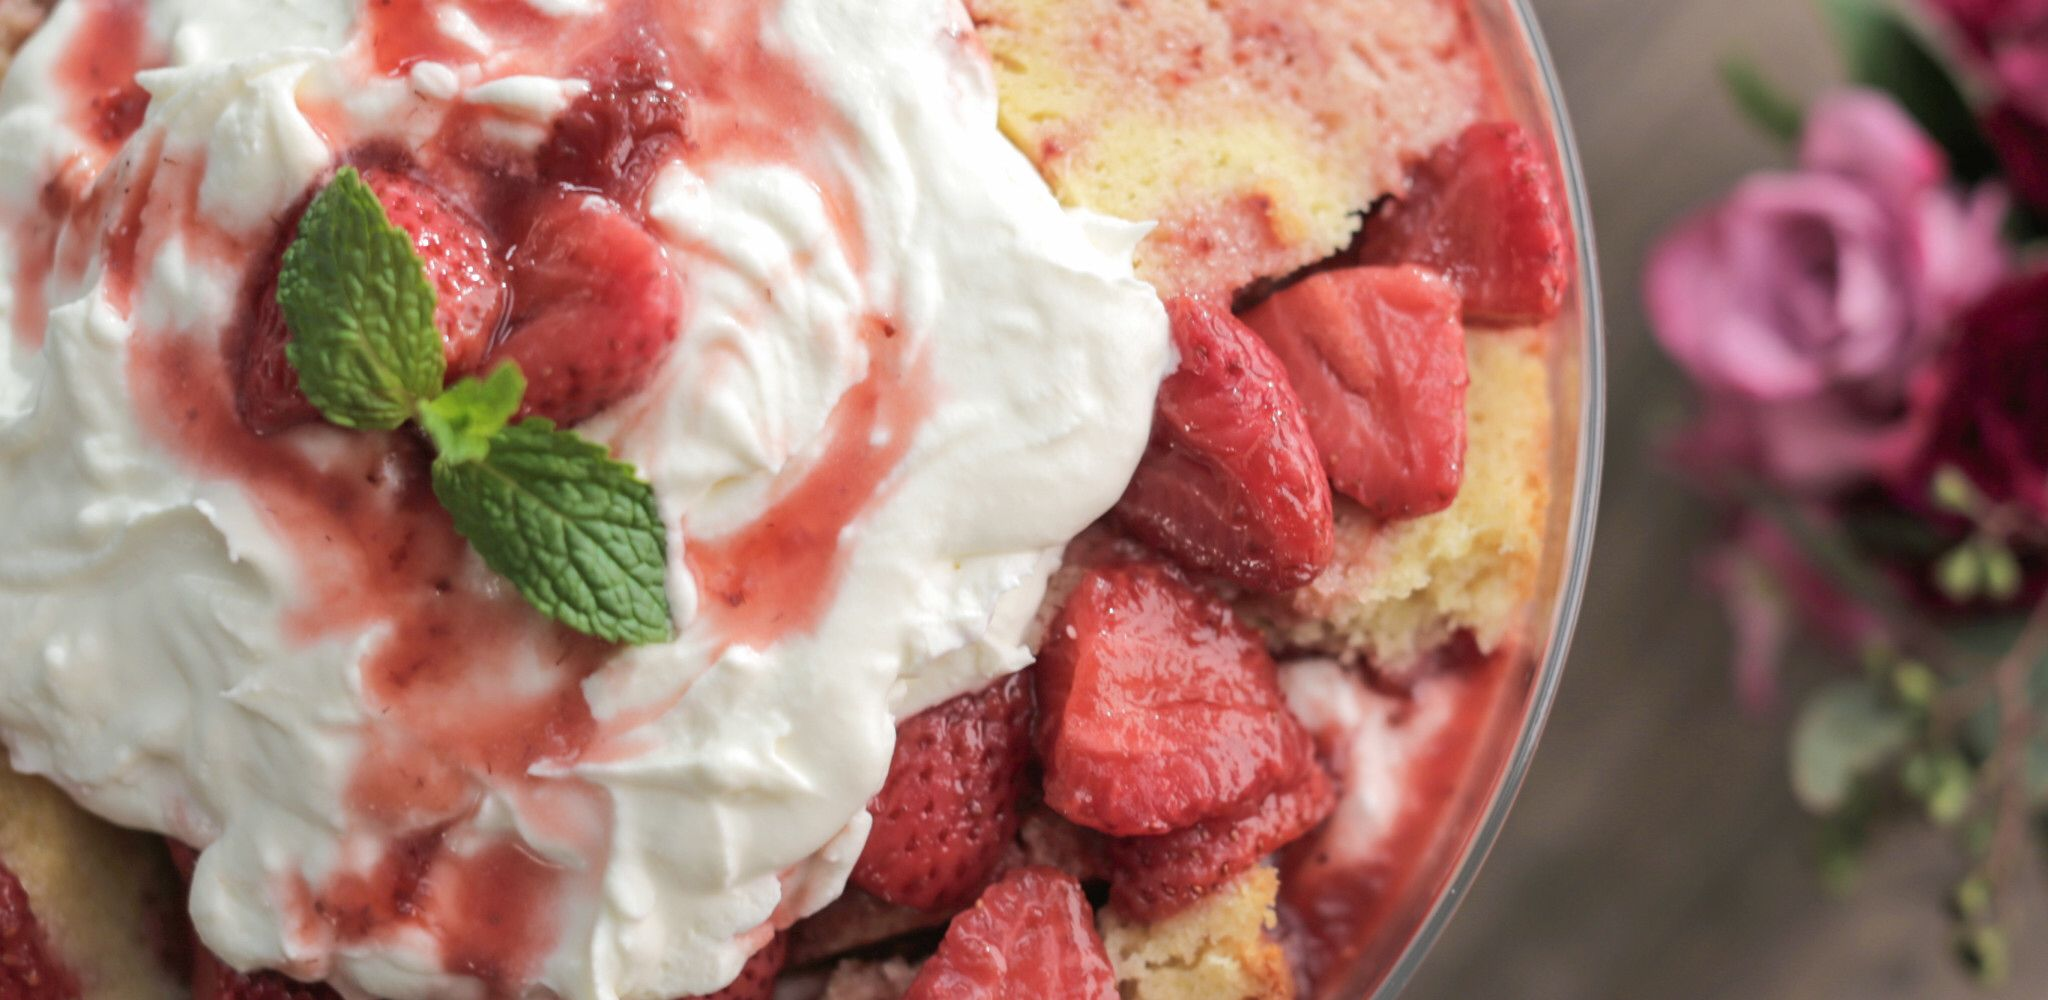 Check out Strawberry Shortcake Trifle Itus so easy to make